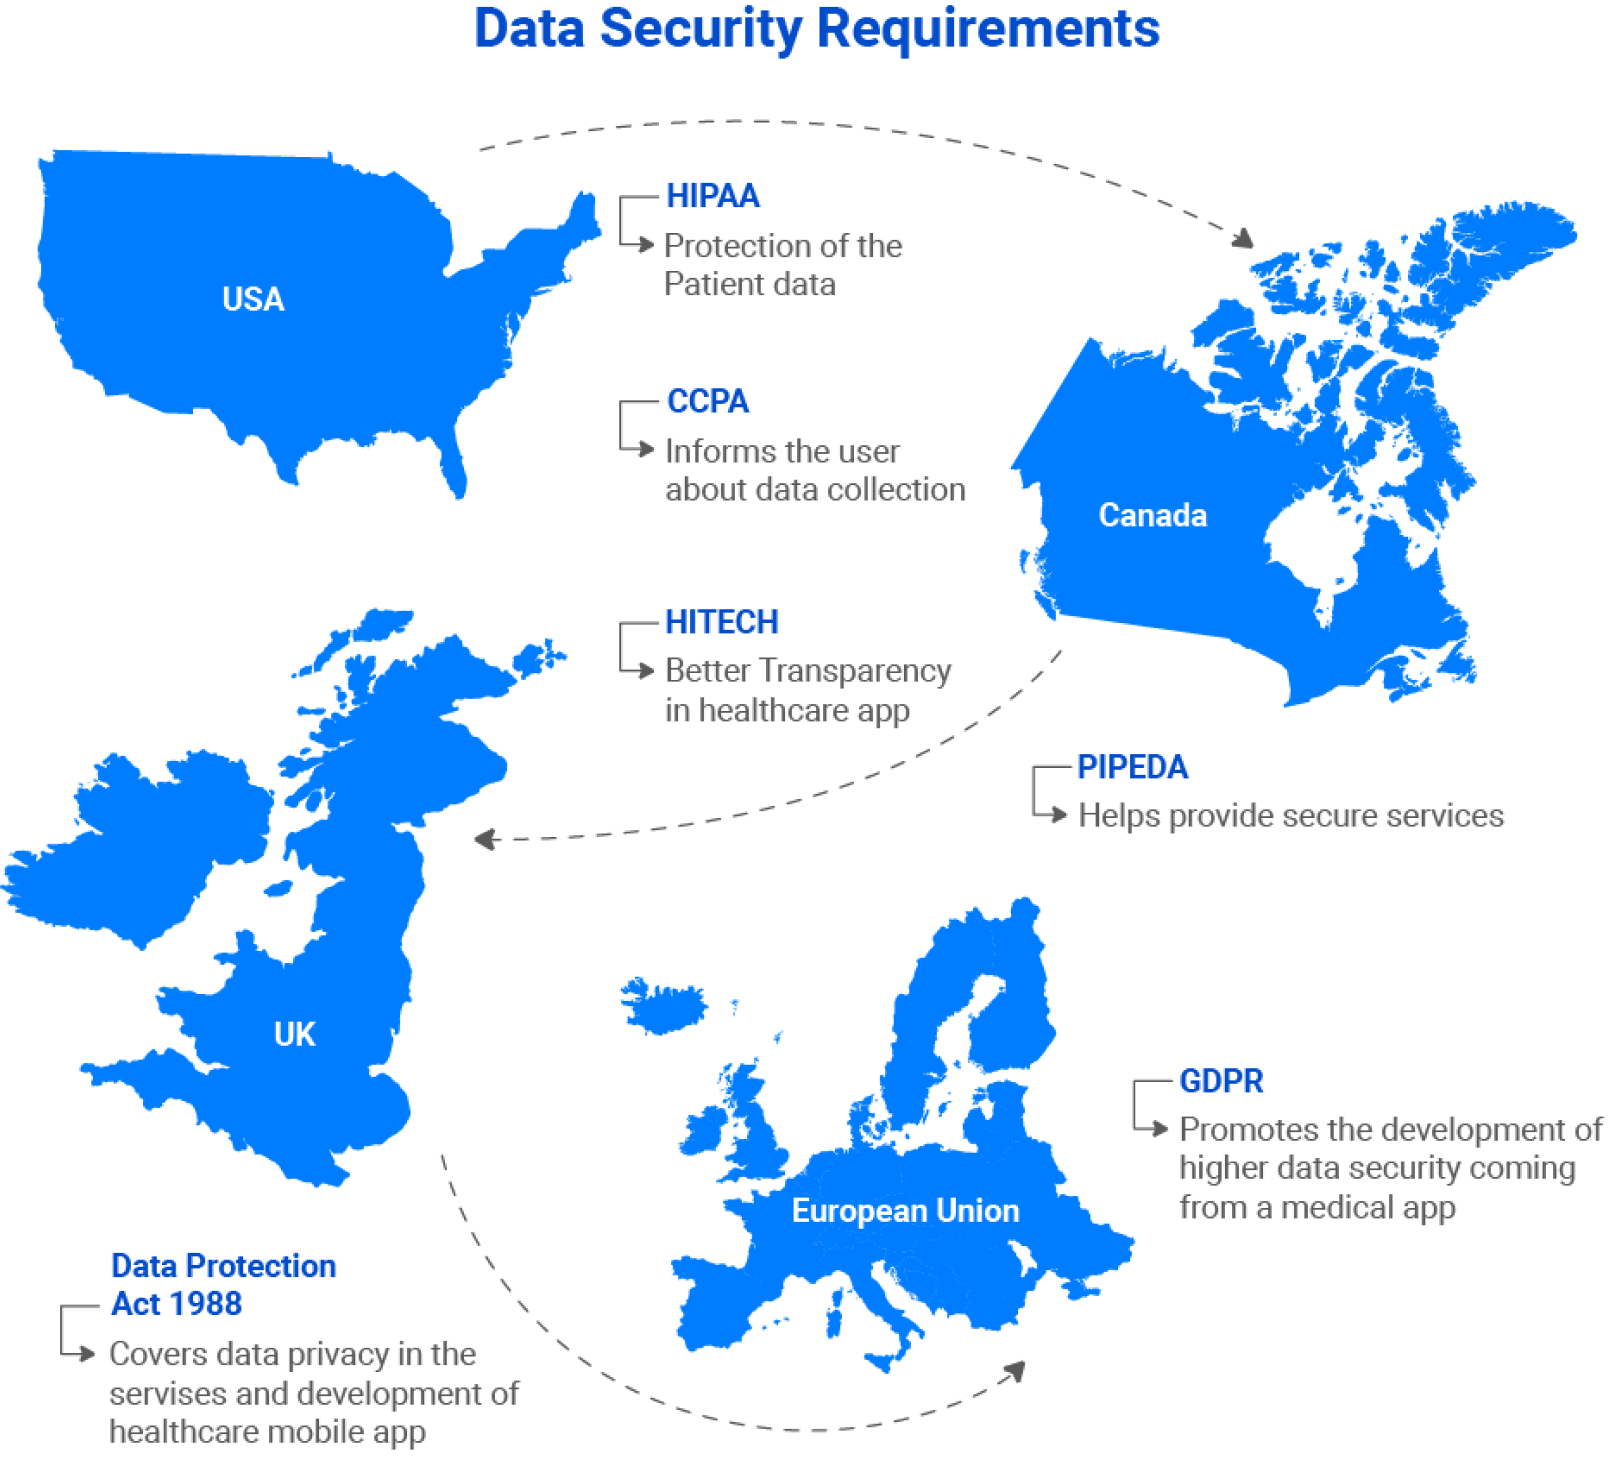 Healthcare Mobile App Security Requirements